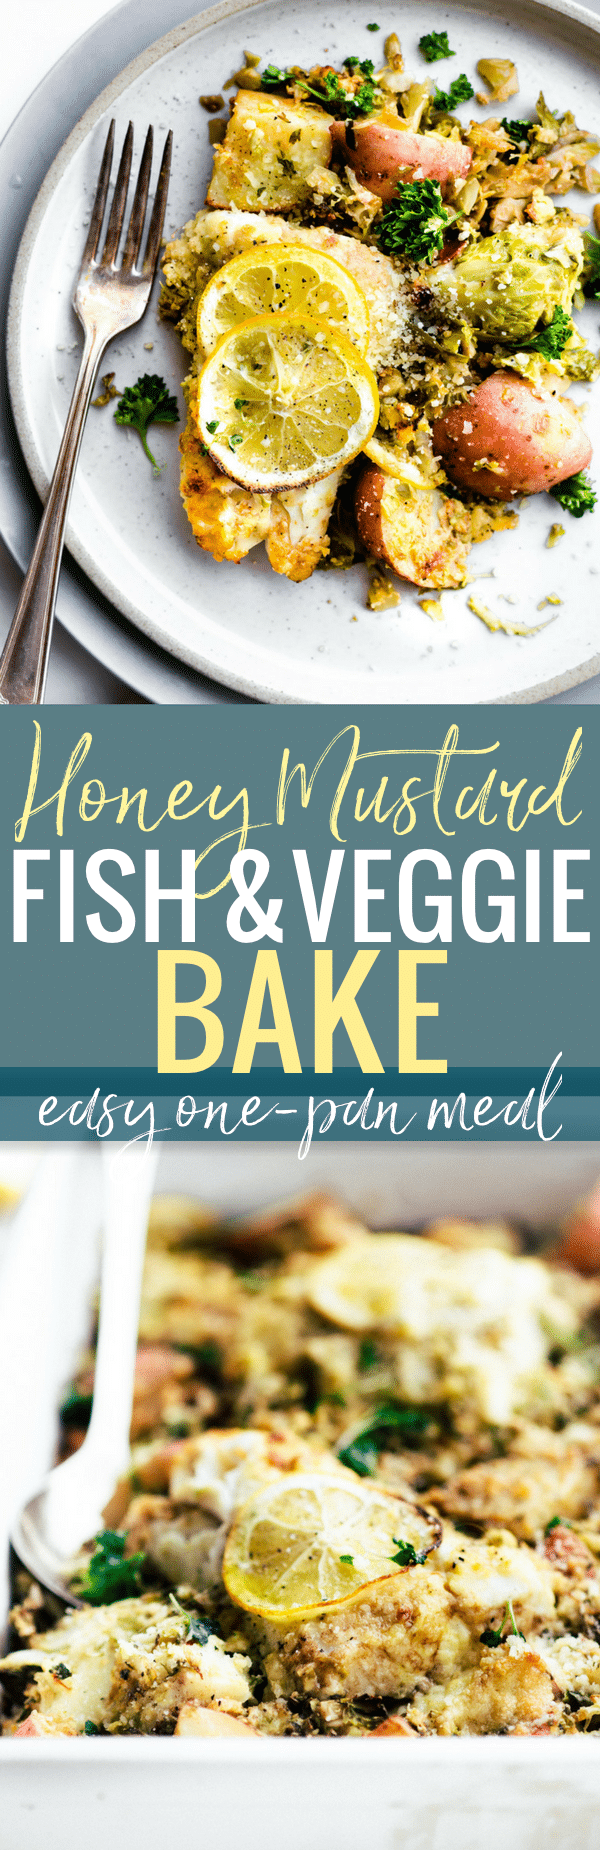 Honey mustard baked fish and vegetable recipe is a quick one pan meal ready in 30 minutes! A complete meal with healthy, light fish, then baked with wholesome vegetables.  Yes, even non fish lovers like it! And all it takes is just a few simple real food ingredients. Promise! Get a healthy dinner on the table in no time ya'll! Paleo friendly. www.cottercrunch.com